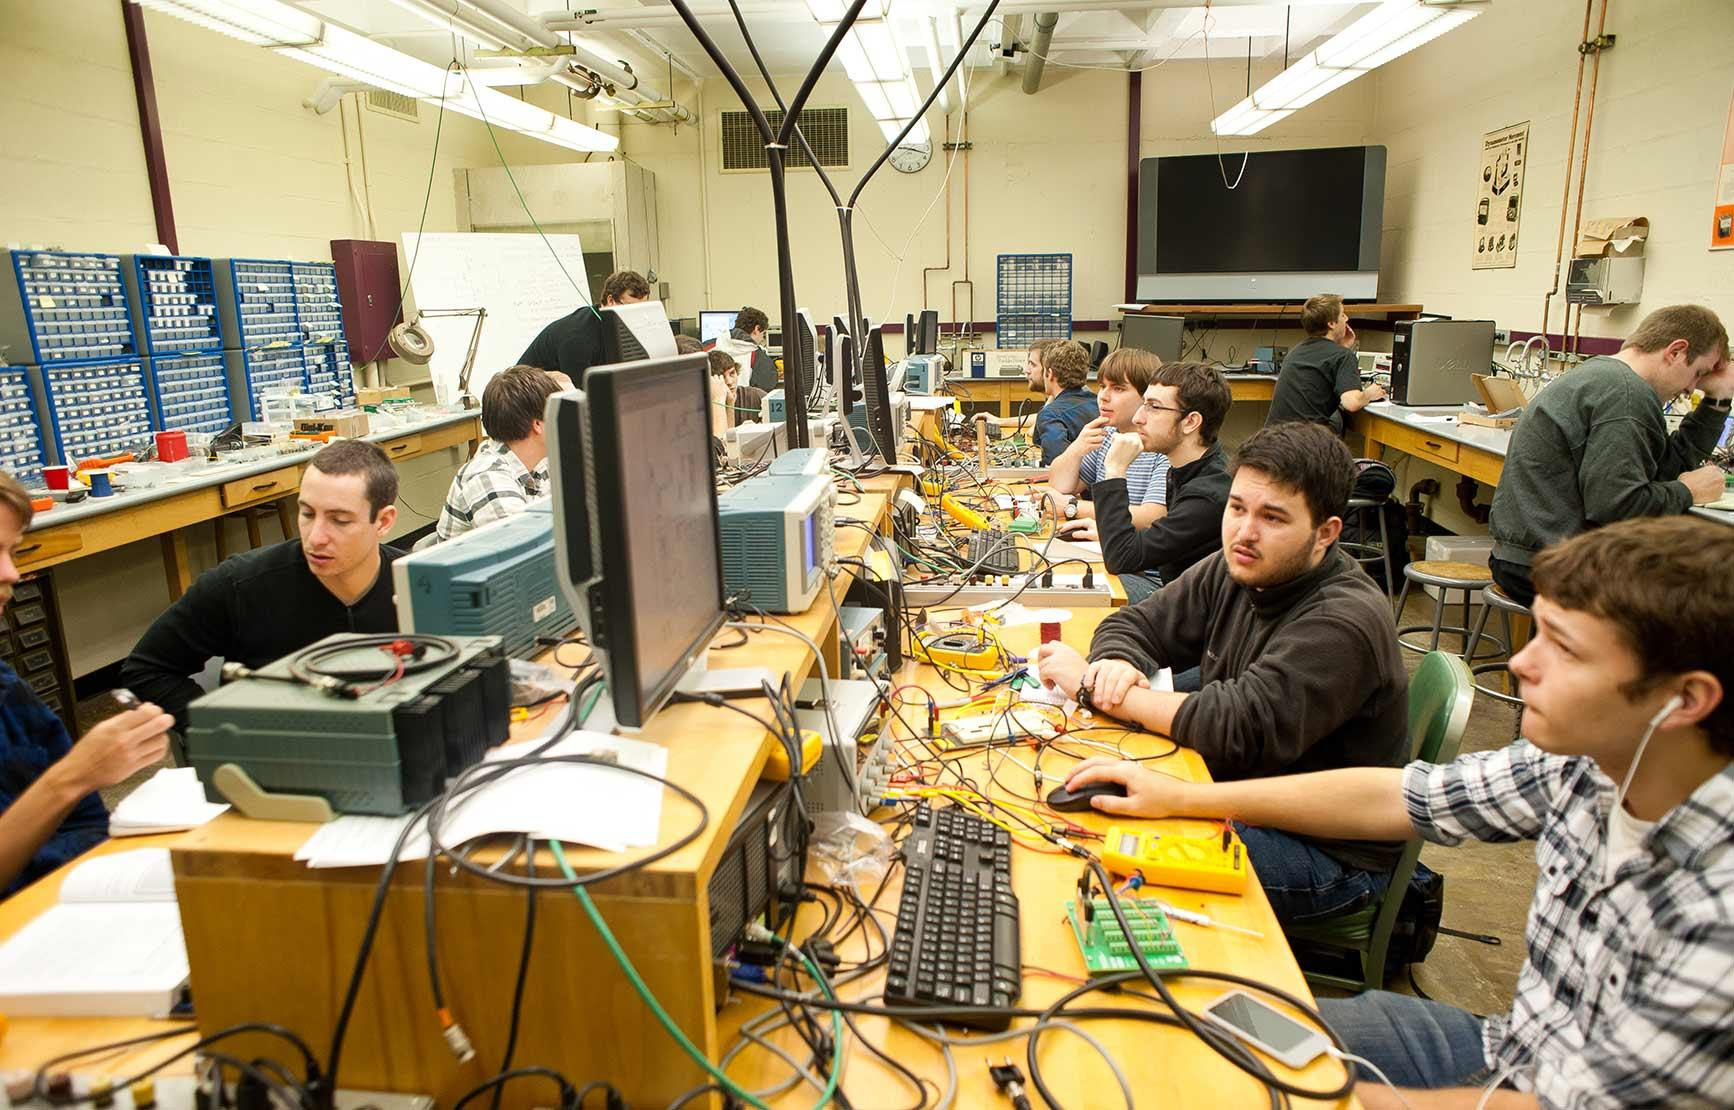 Students working in Electronics Lab